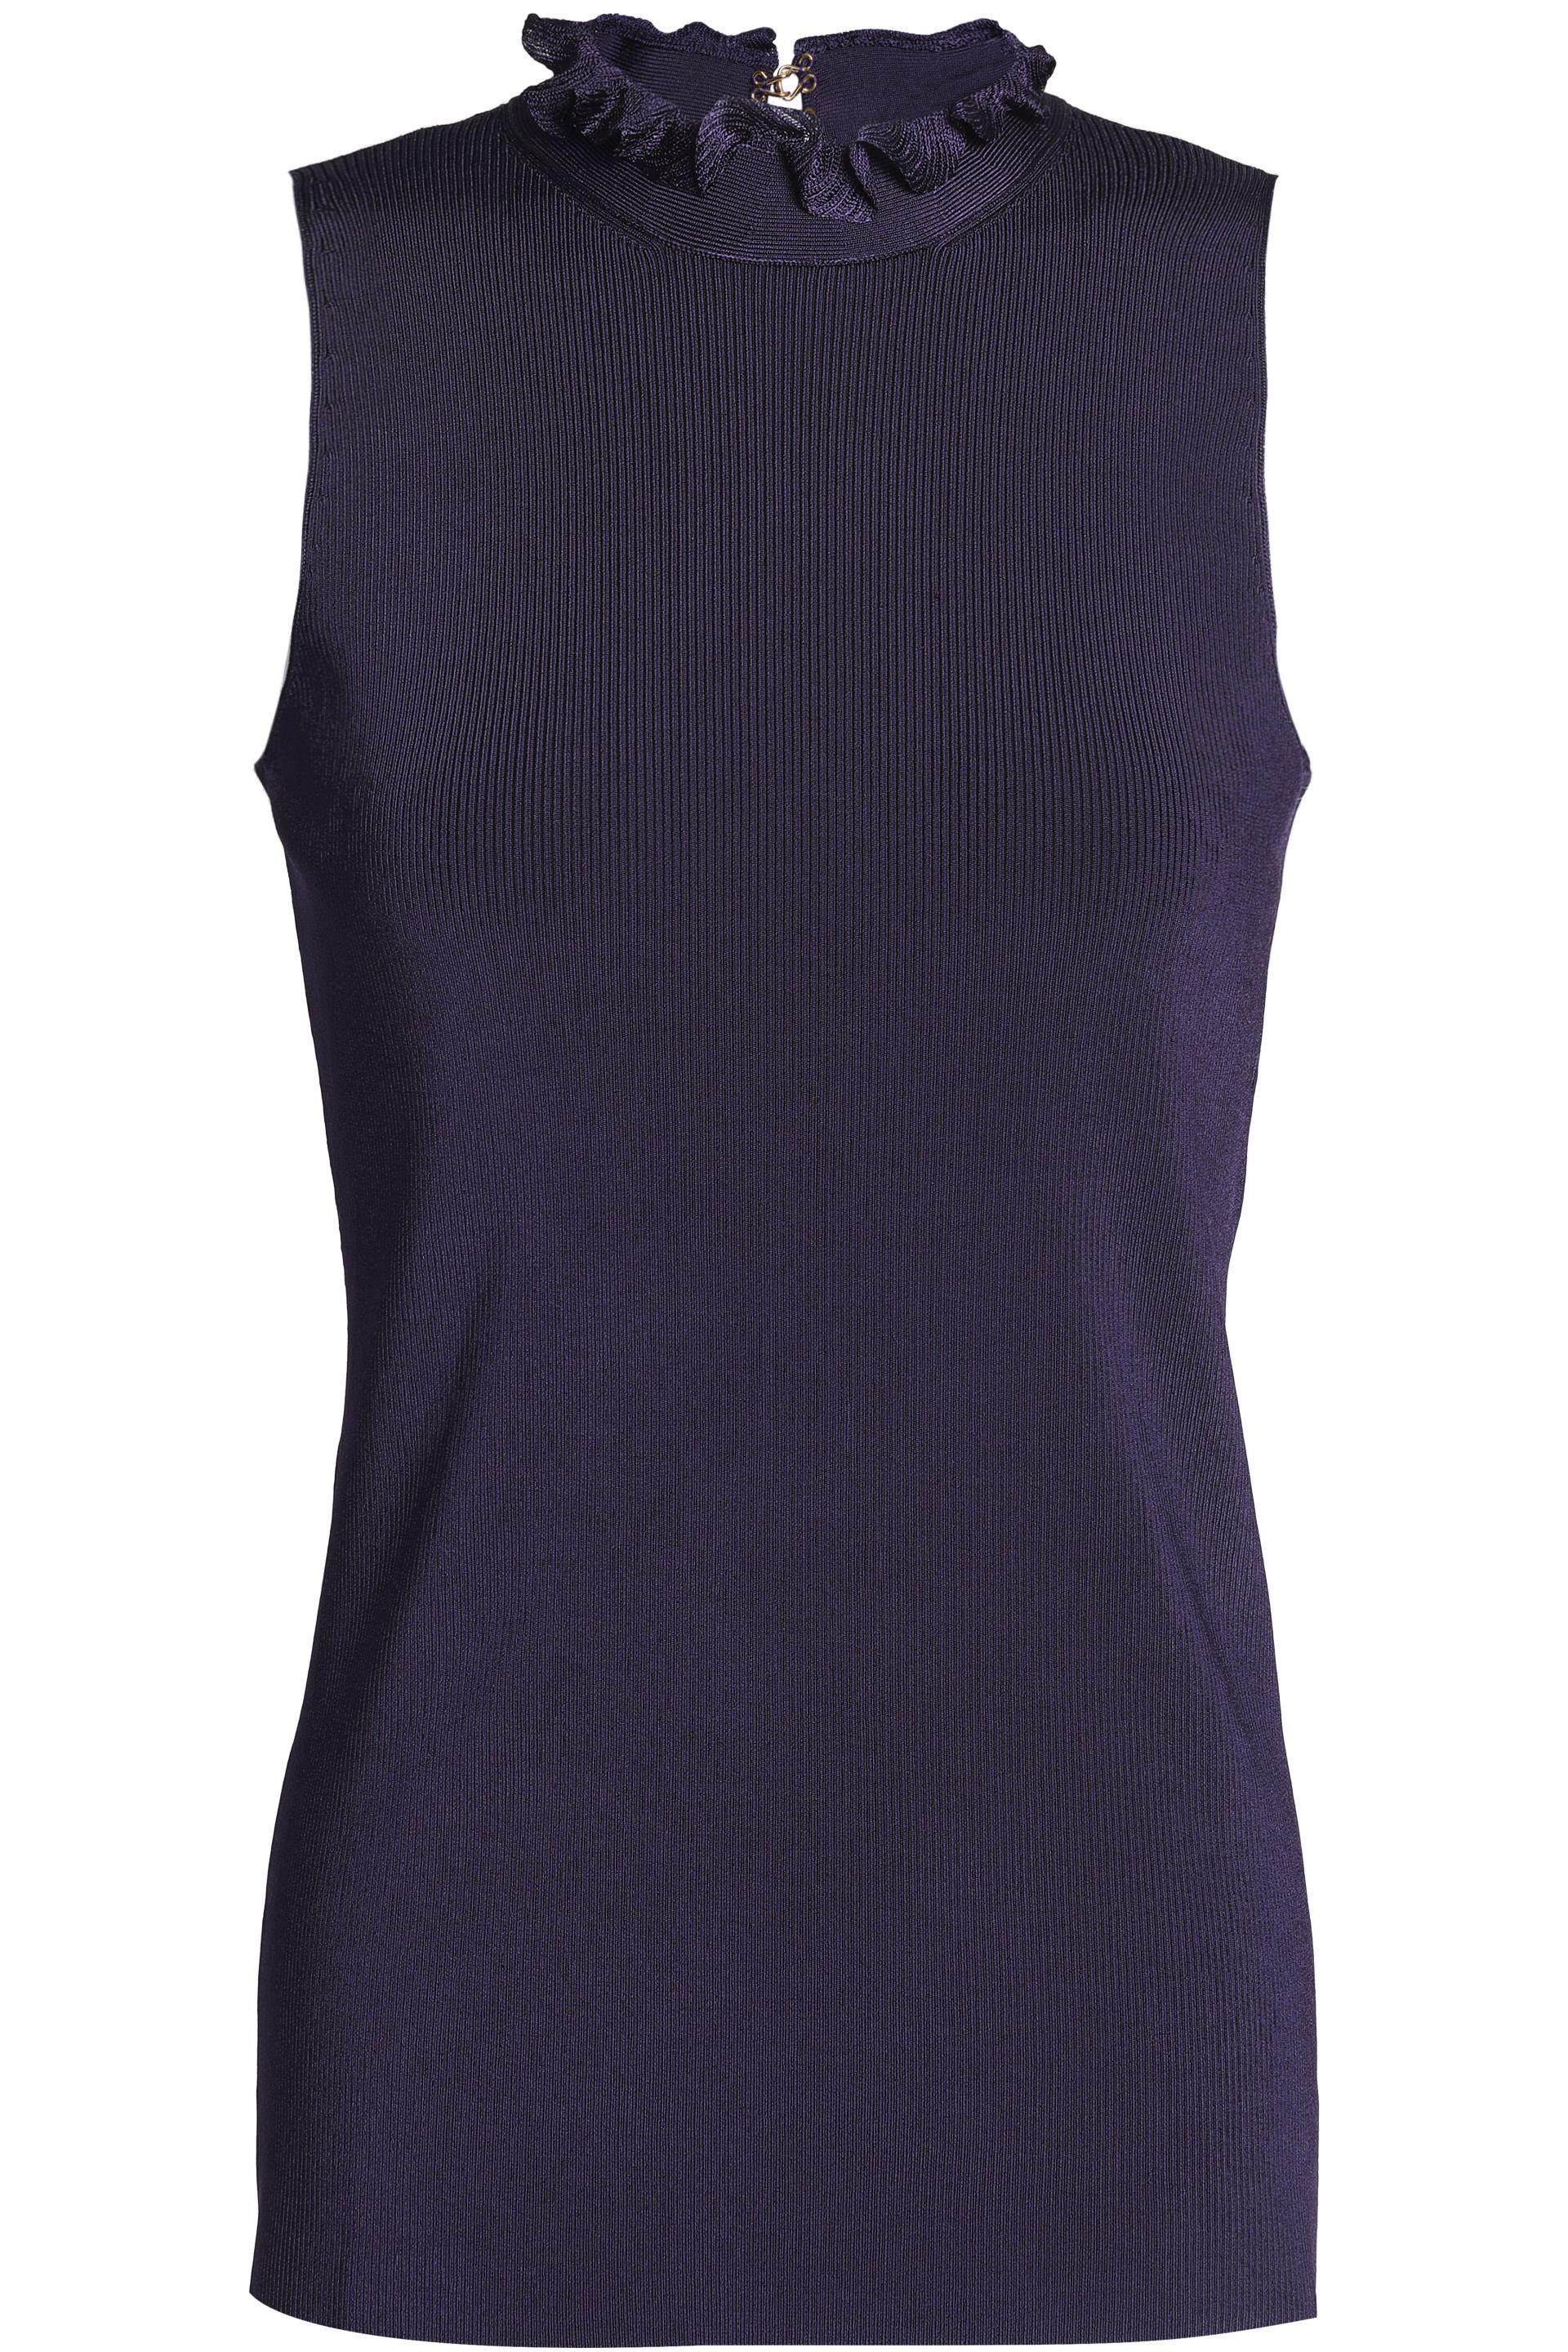 Outlet With Mastercard Best Place Online Nina Ricci Sleeveless Rib Knit Top ODQbfn